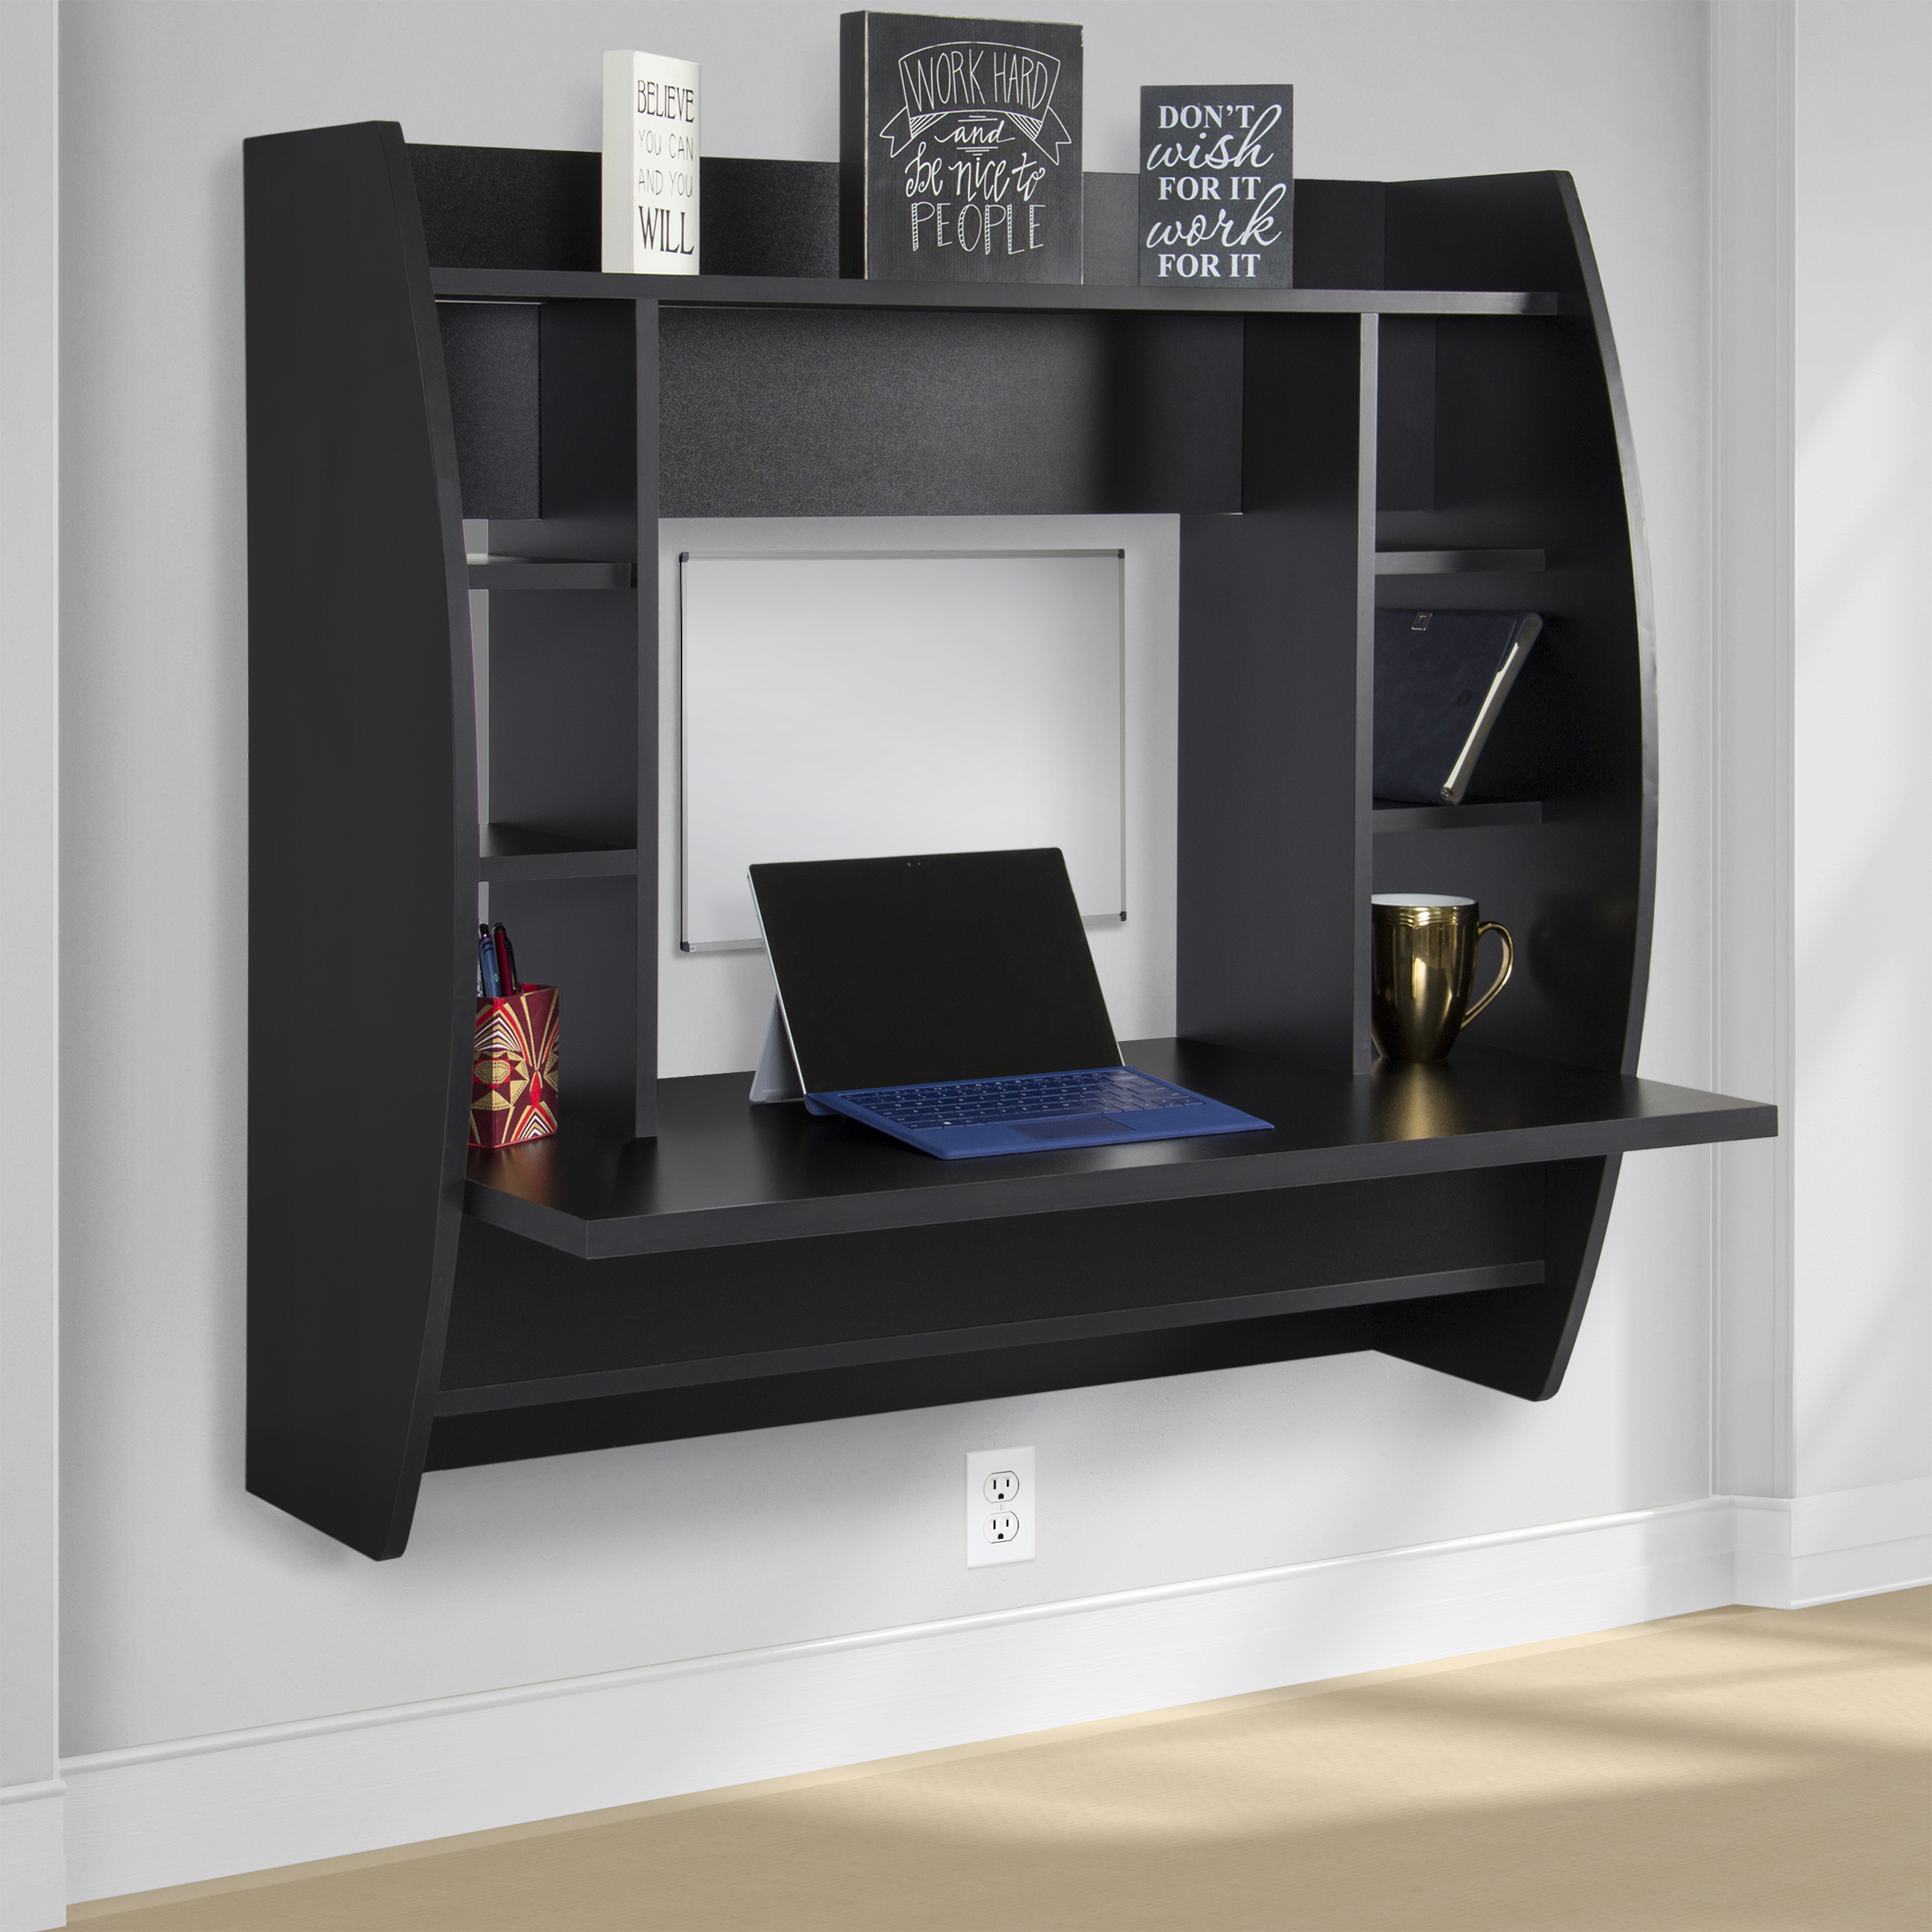 wall mount floating computer desk with storage shelves home work station black ebay. Black Bedroom Furniture Sets. Home Design Ideas